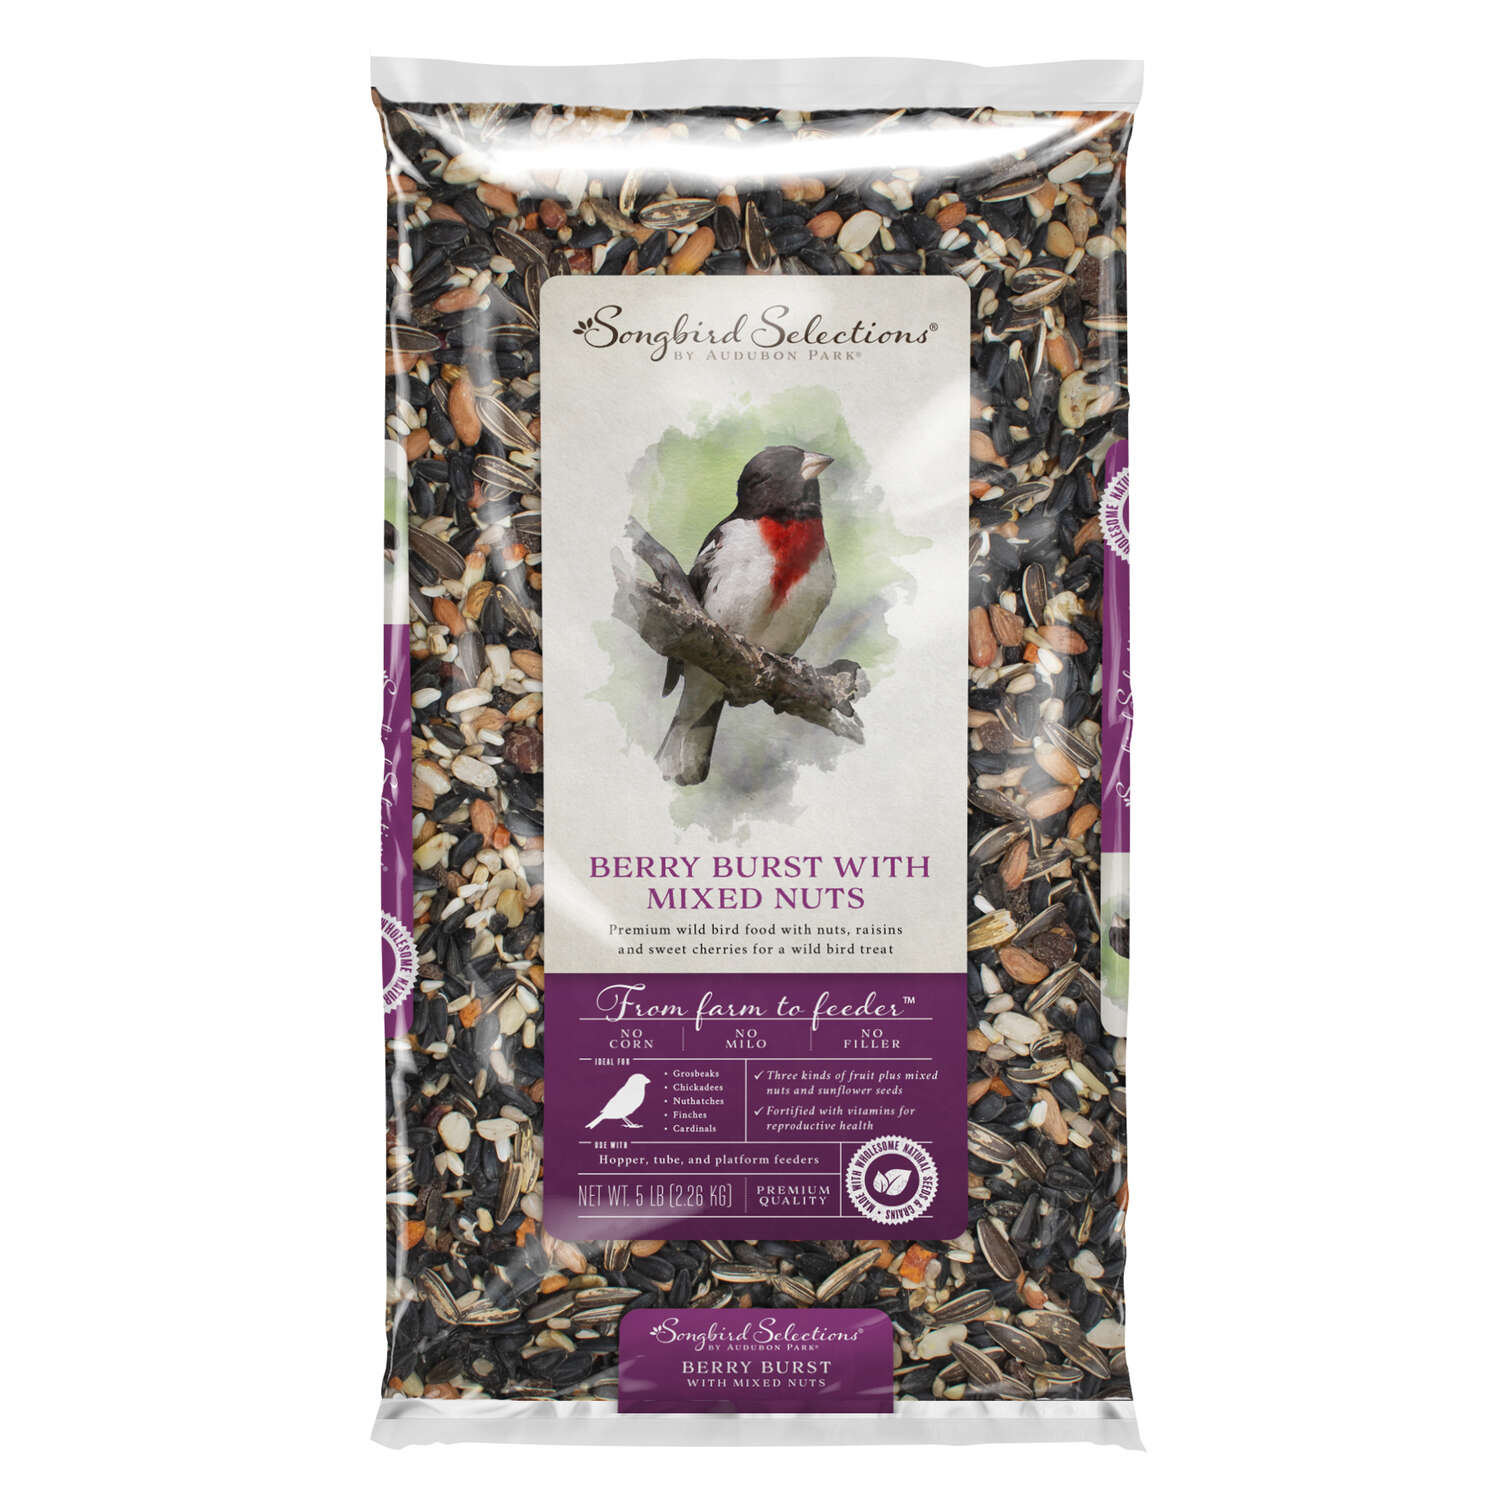 Audubon Park Songbird Selections Chickadee and Nuthatch Wild Bird Food Fruits And Nuts 5 lb.